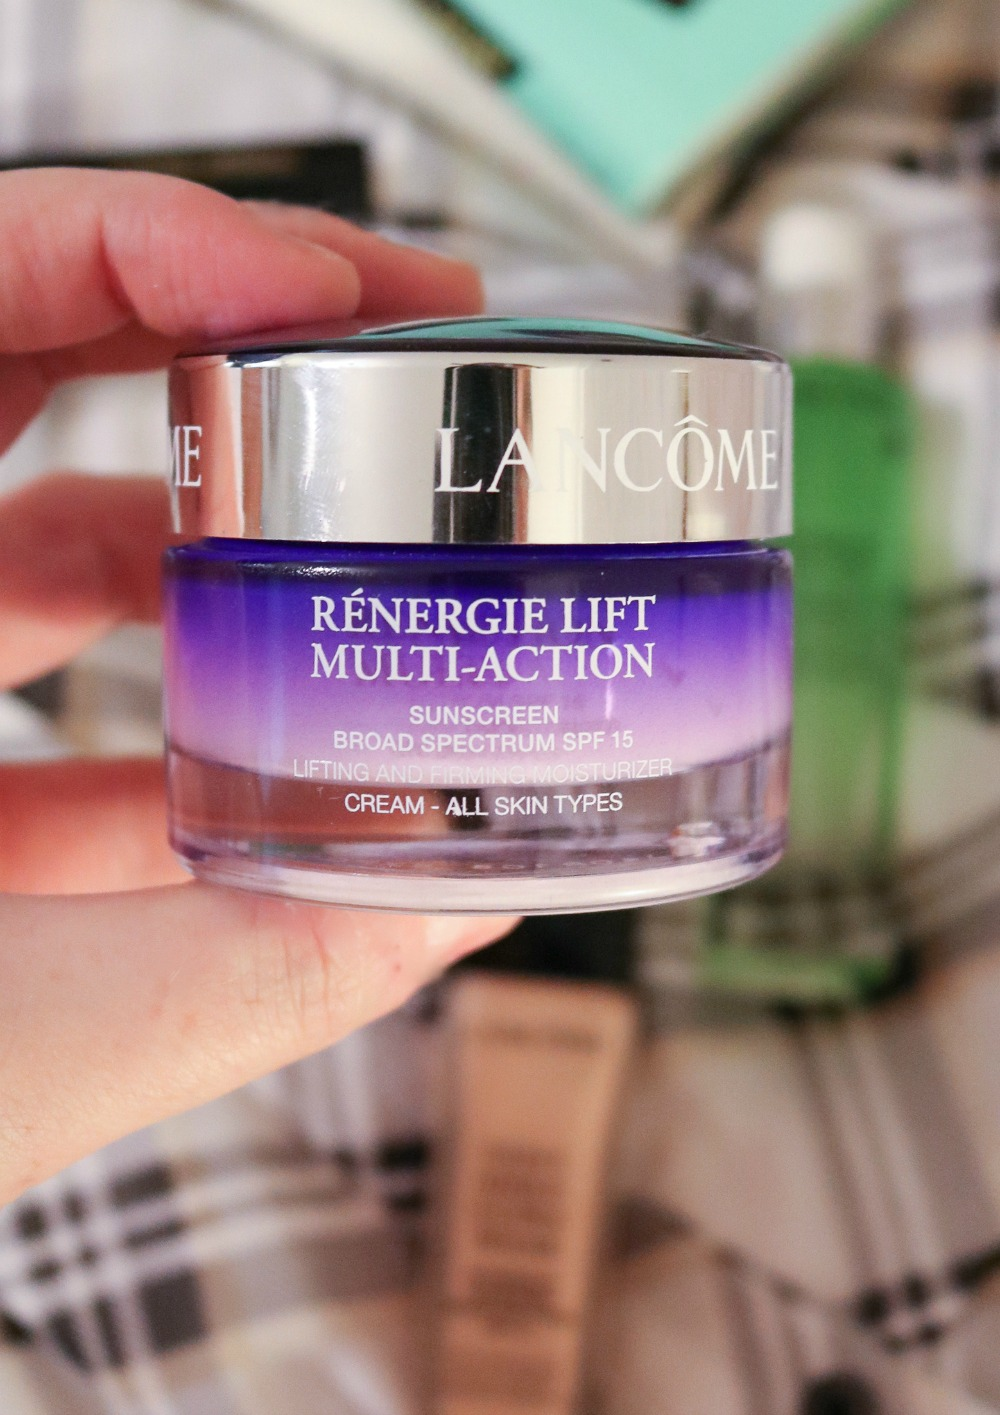 Best Lancome Products I DreaminLace.com